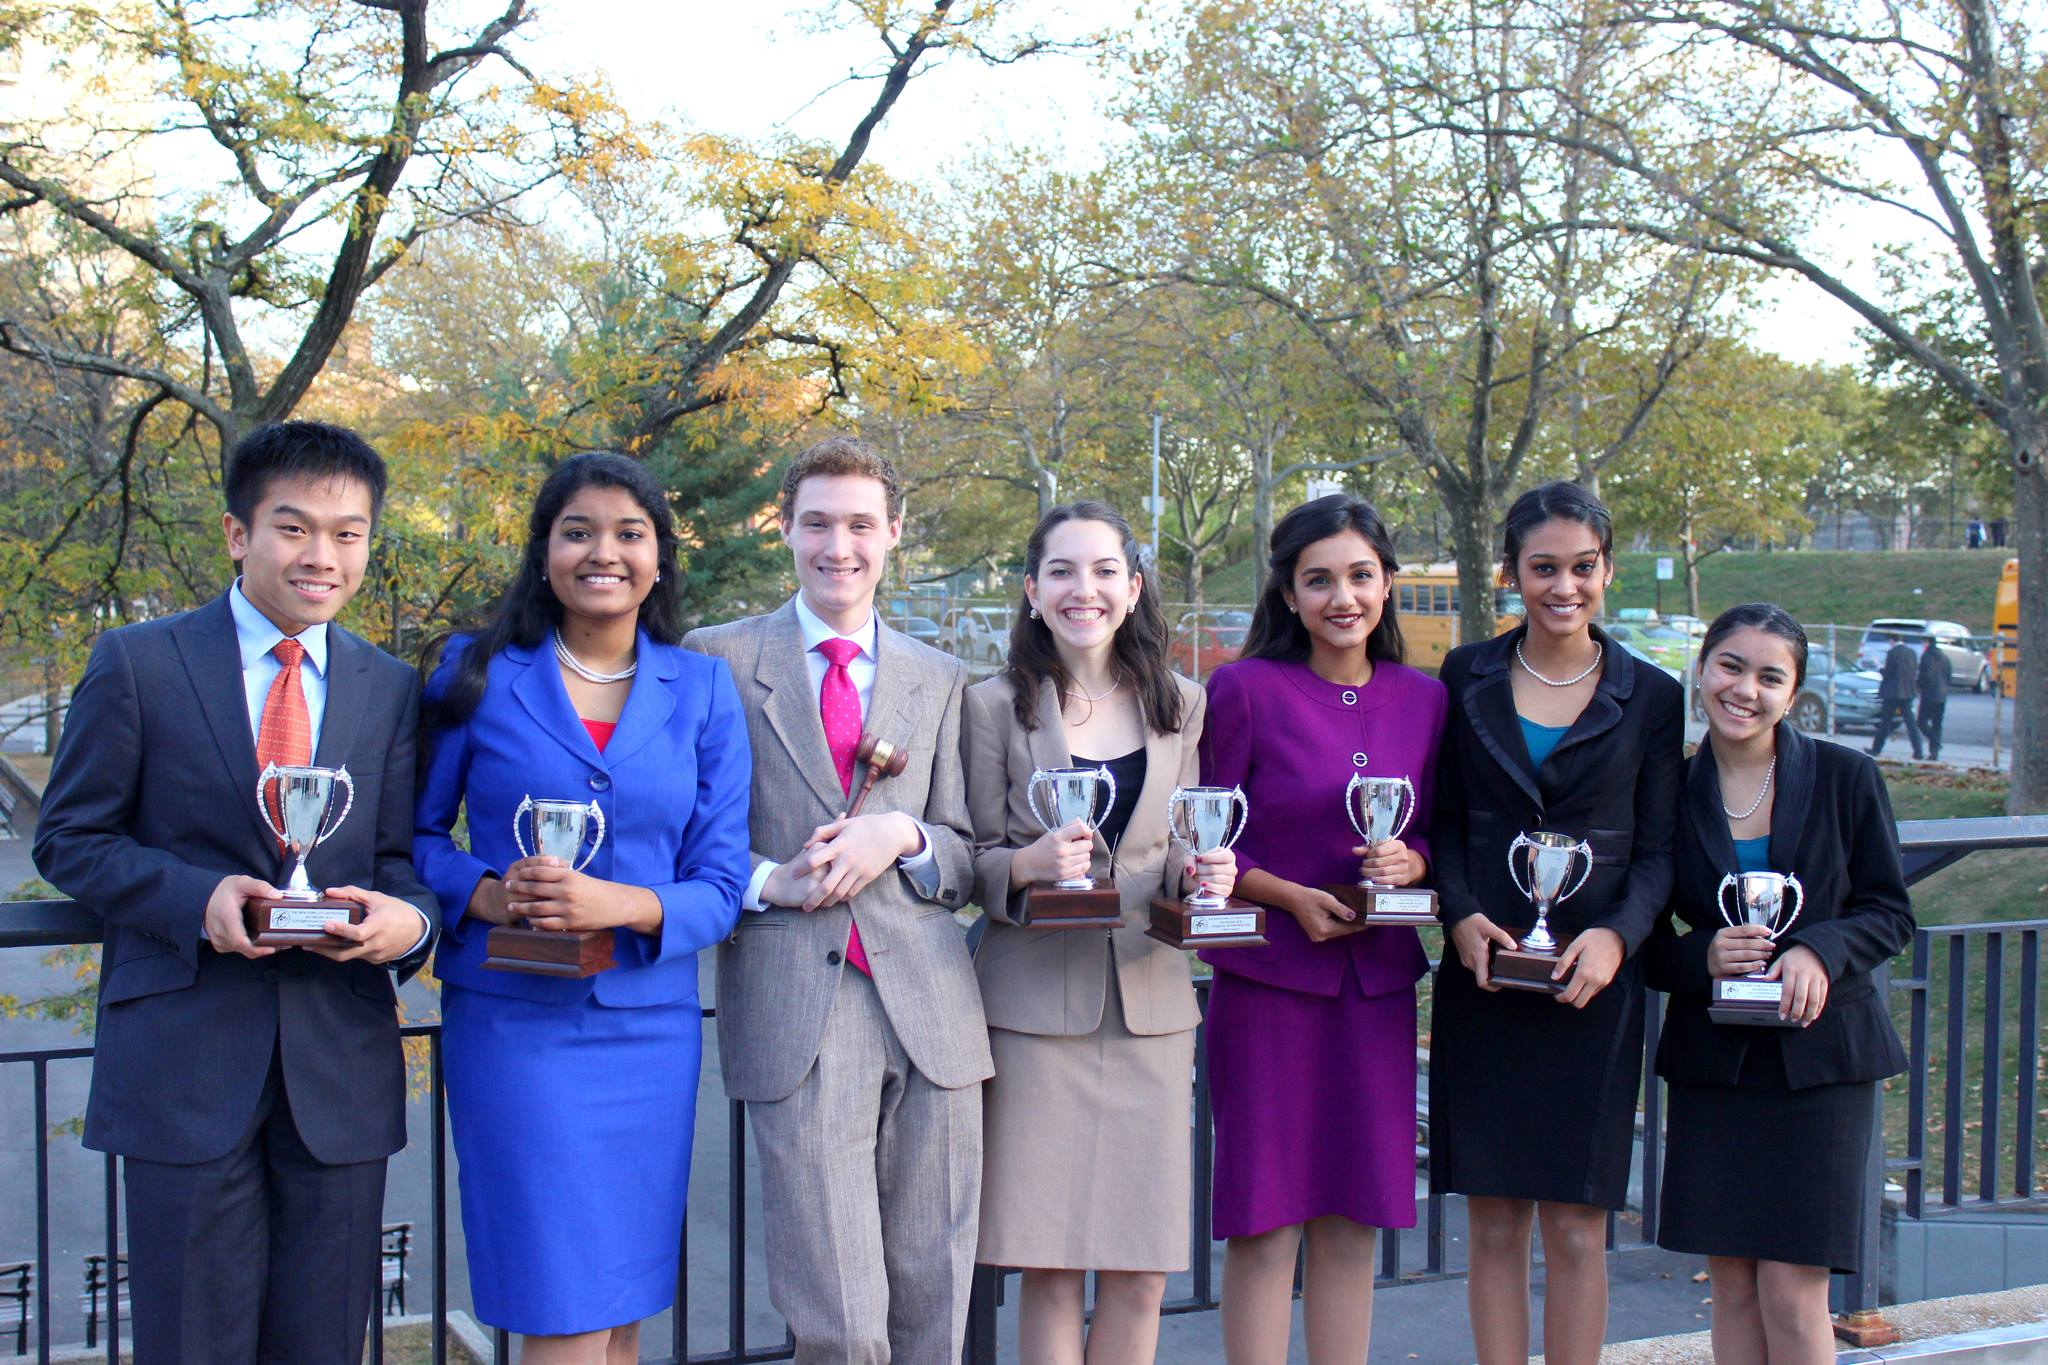 New York City Invitational - Our Varsity Speech Team!